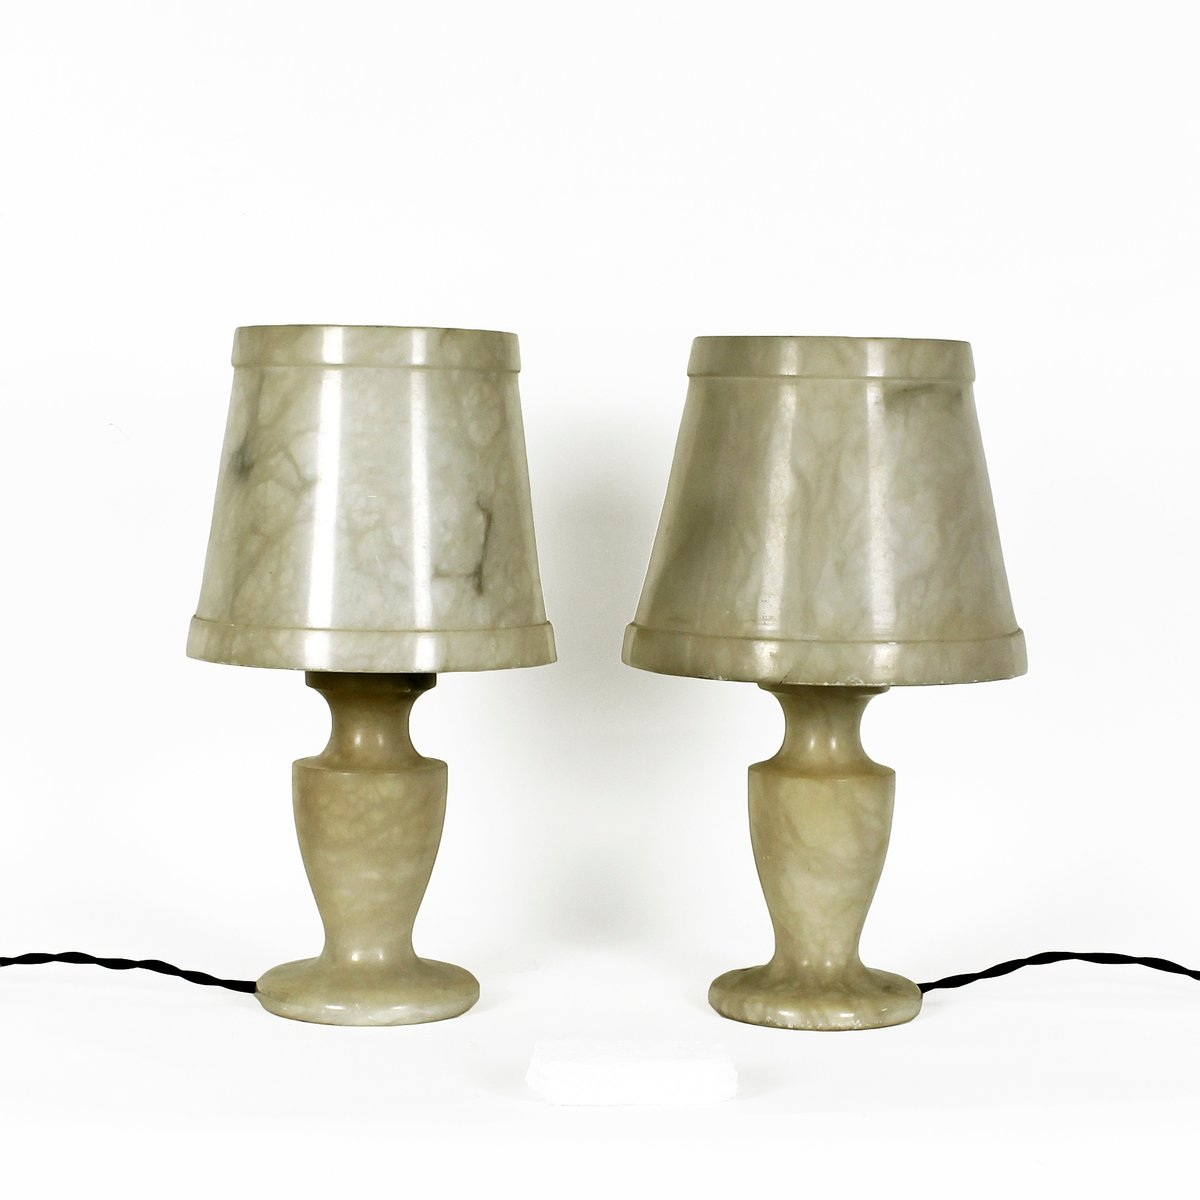 Small alabaster table lamps 1960s set of 2 for sale at pamono small alabaster table lamps 1960s set of 2 mozeypictures Choice Image